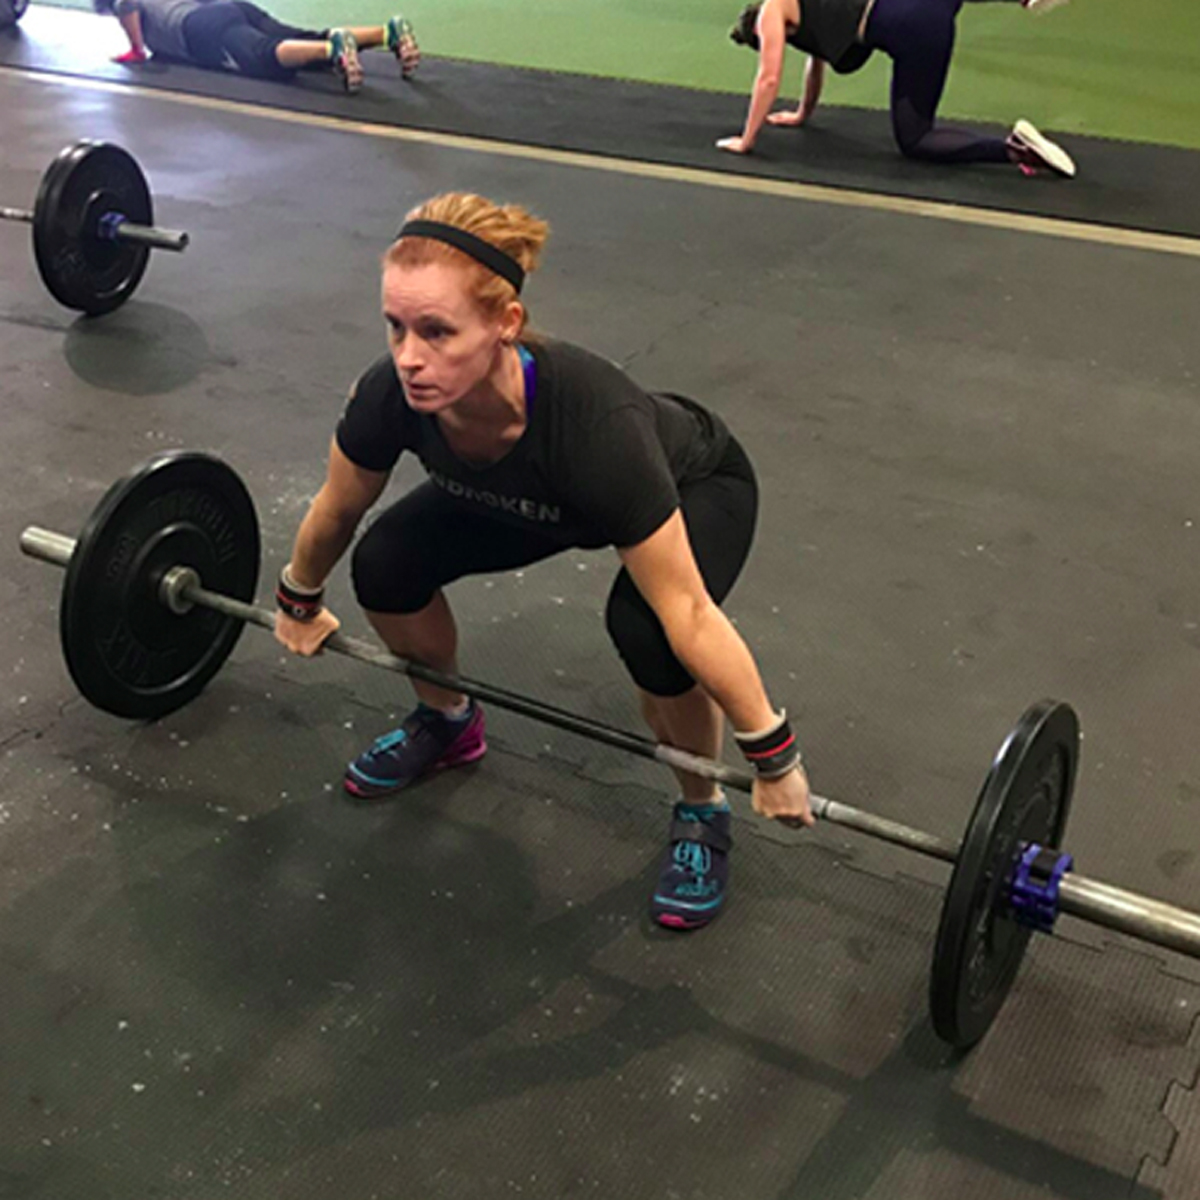 CrossFit Gyms near Mableton GA, CrossFit Gyms near Atlanta GA, CrossFit Gyms near West Atlanta GA, CrossFit Gyms near Cobb GA, CrossFit Gyms near Vinings GA, CrossFit Gyms near Smyrna GA